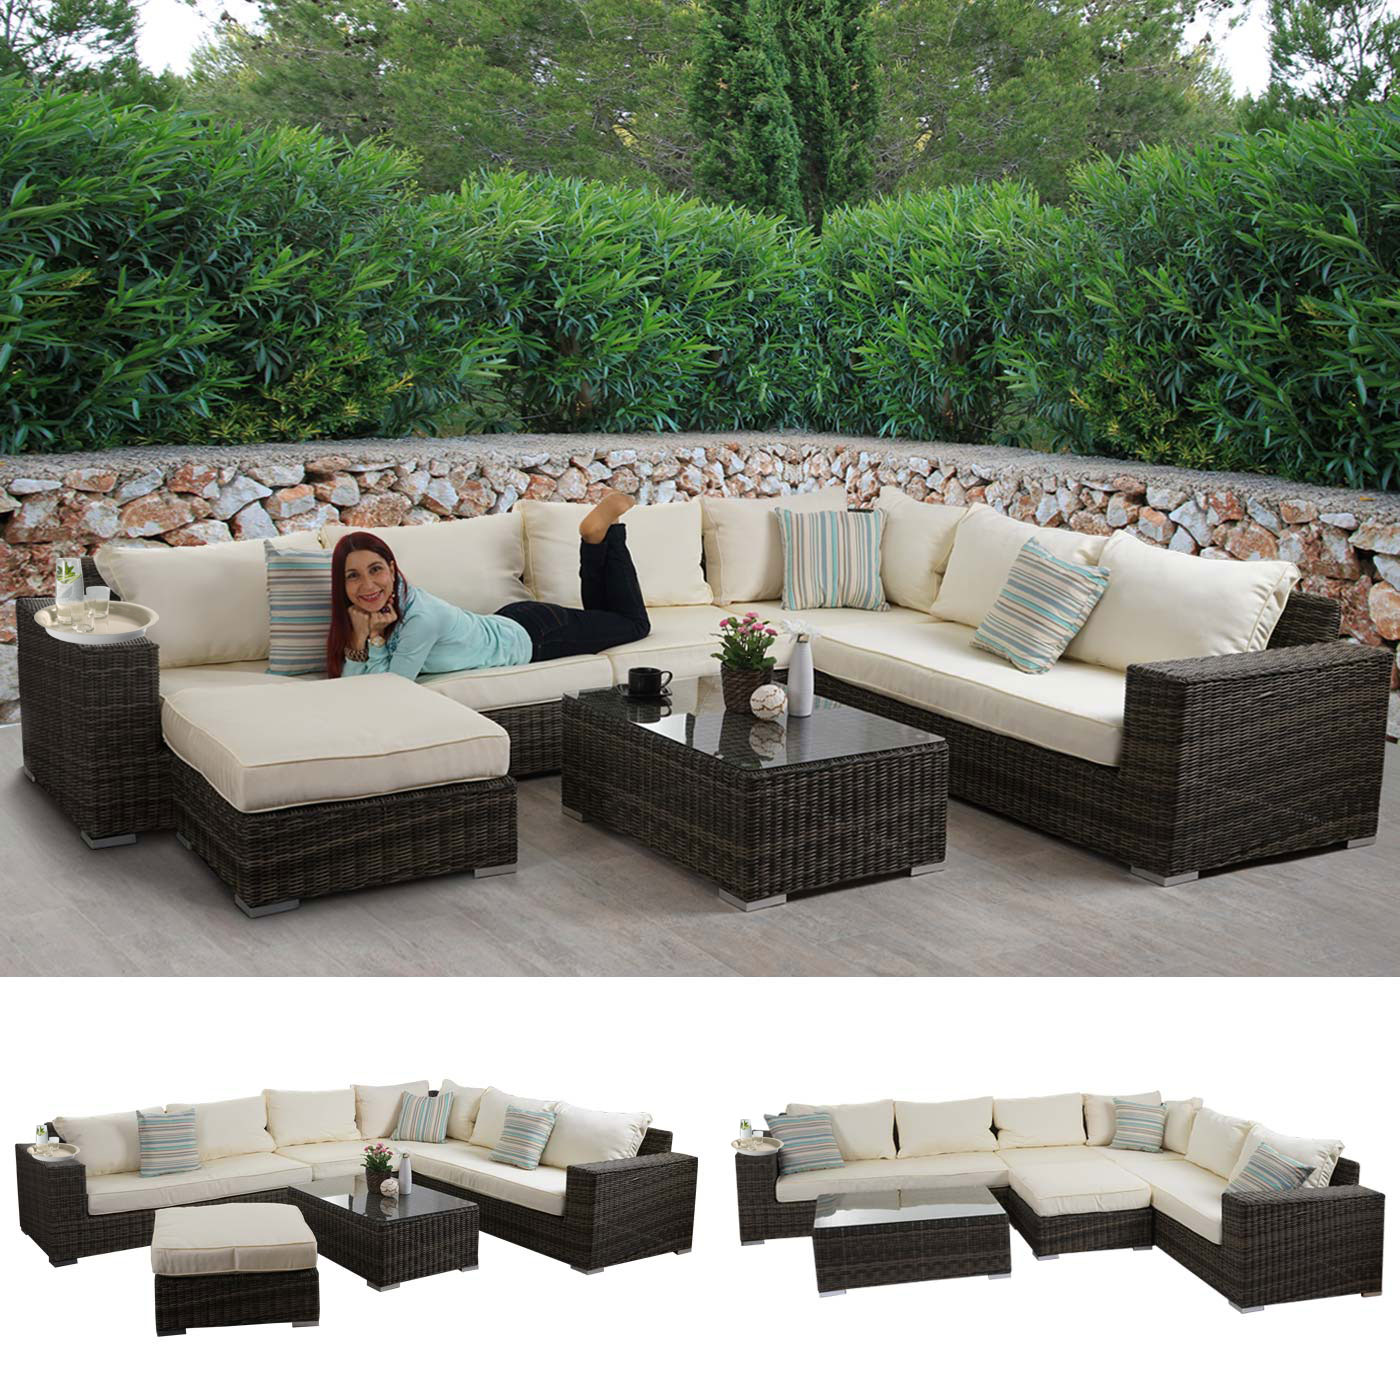 luxus poly rattan sofa garnitur lounge set gartengarnitur melilla alu gestell ebay. Black Bedroom Furniture Sets. Home Design Ideas